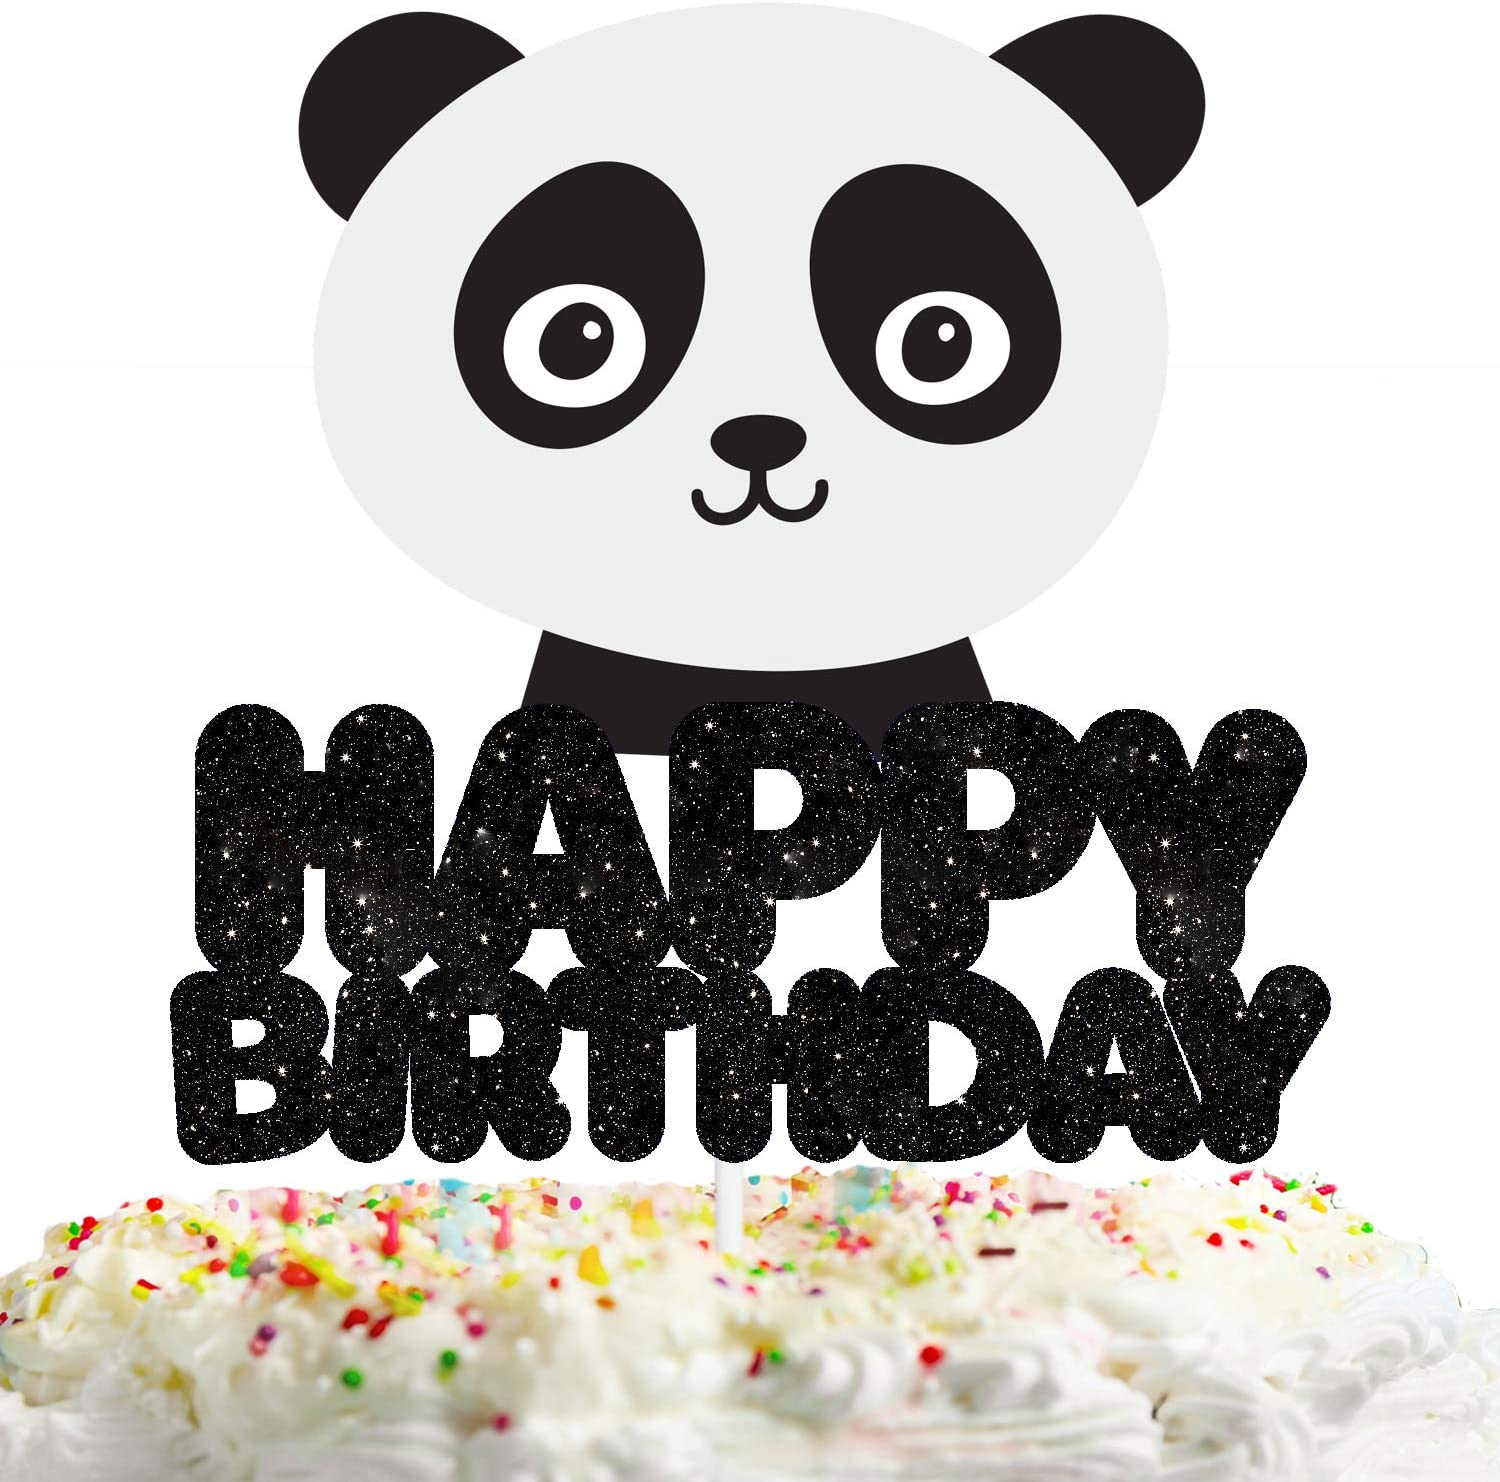 Panda Happy Birthday Cake Topper Decorations with Multicolored Animal for Birthday Theme Baby Shower Party Decor Supplies